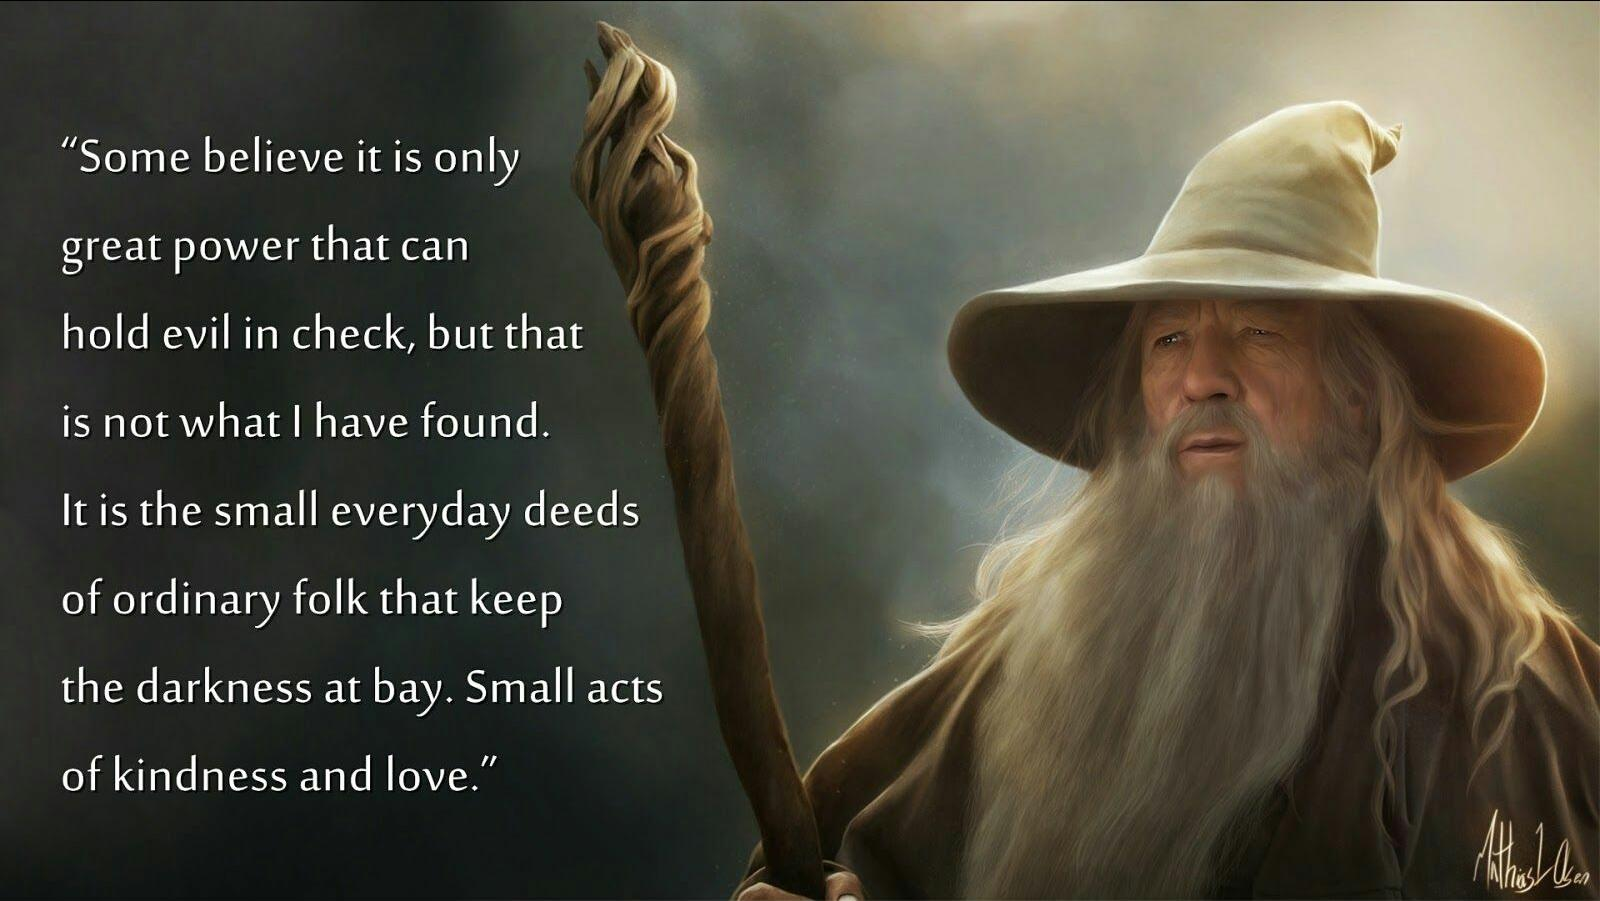 Some believe it is only great power that can hold evil in check, but that is not what I have found. It is the small everyday deeds of ordinary folk that keep the darkness at bay. Small acts of kindness and love. [1600*901] J.R.R. Tolkien